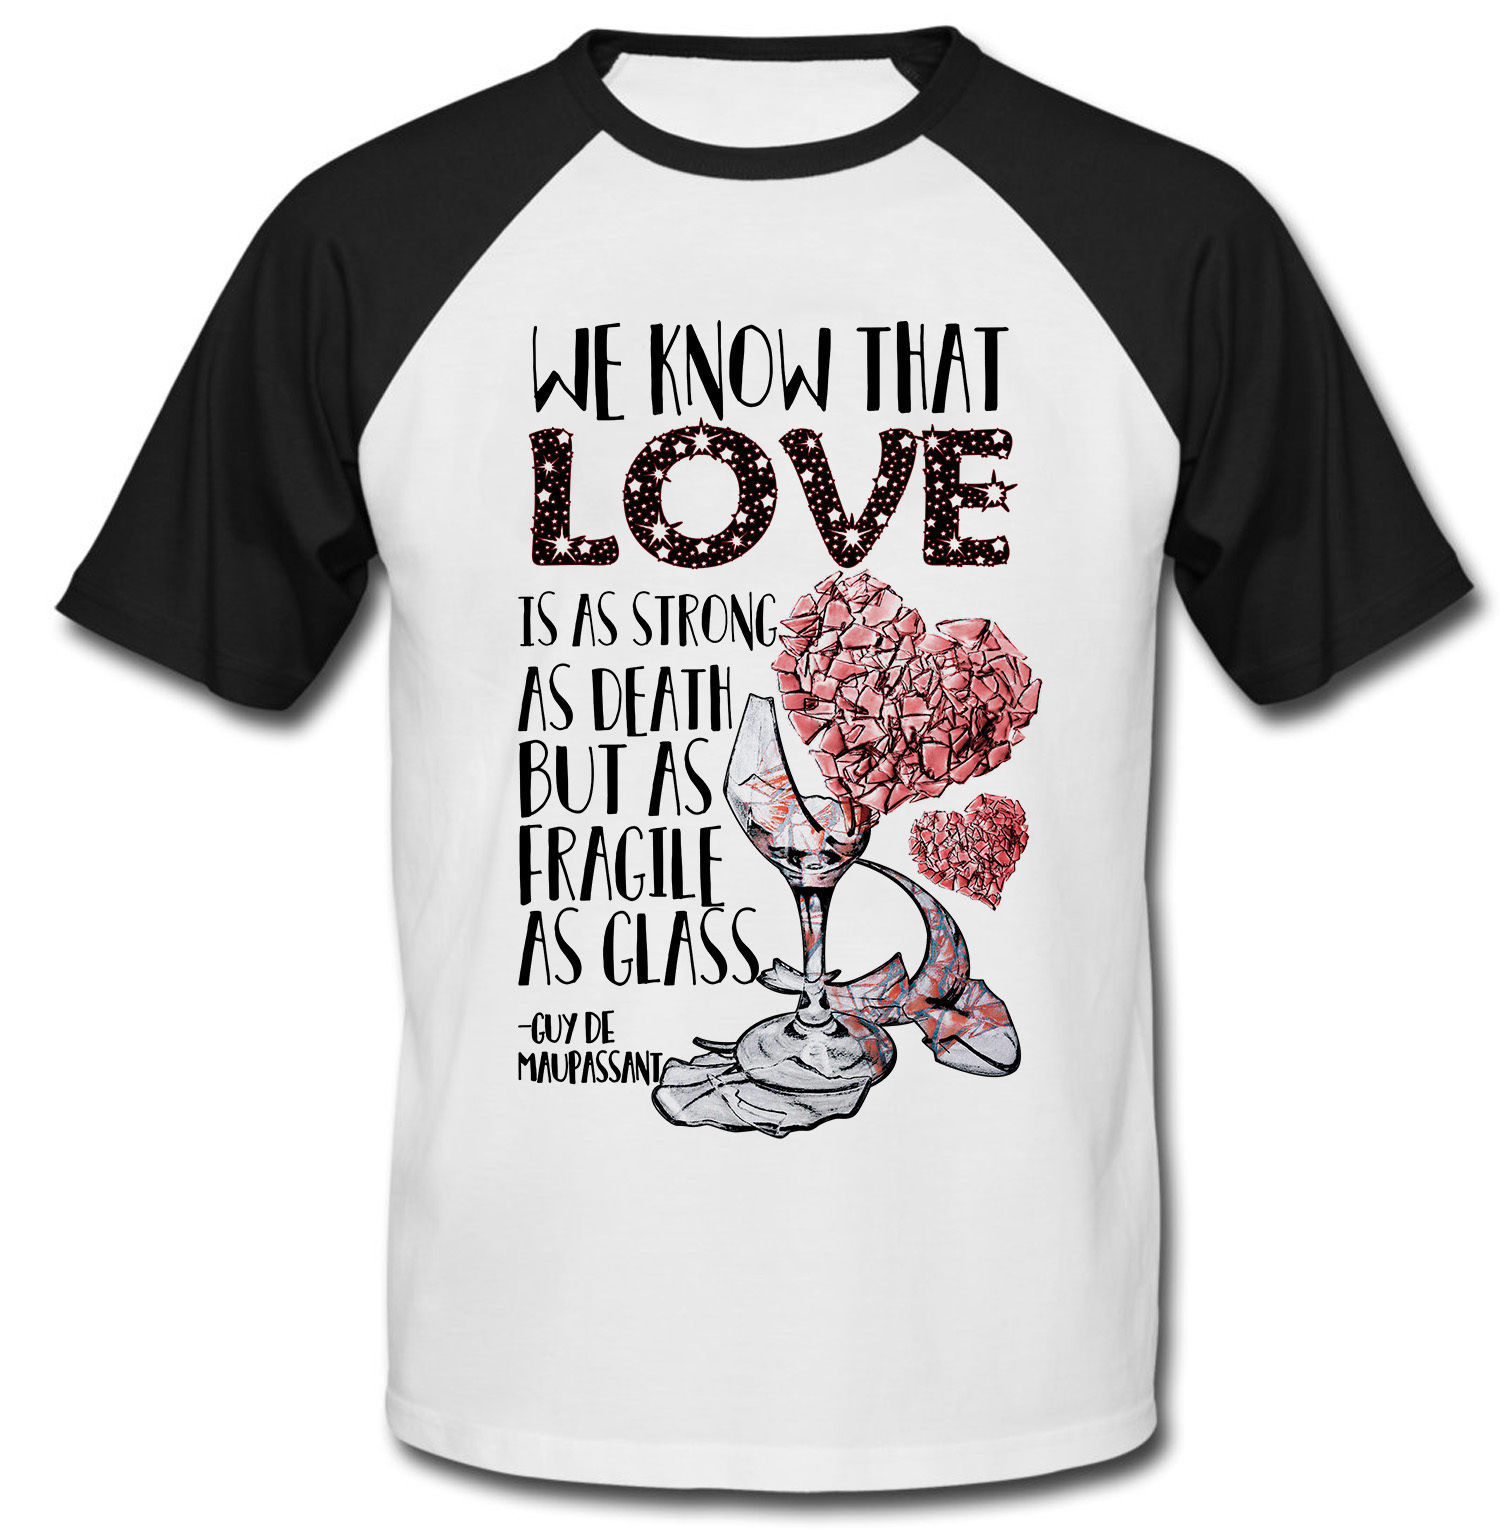 GUY DE MAUPASSANT LOVE QUOTE - NEW COTTON BASEBALL TSHIRT